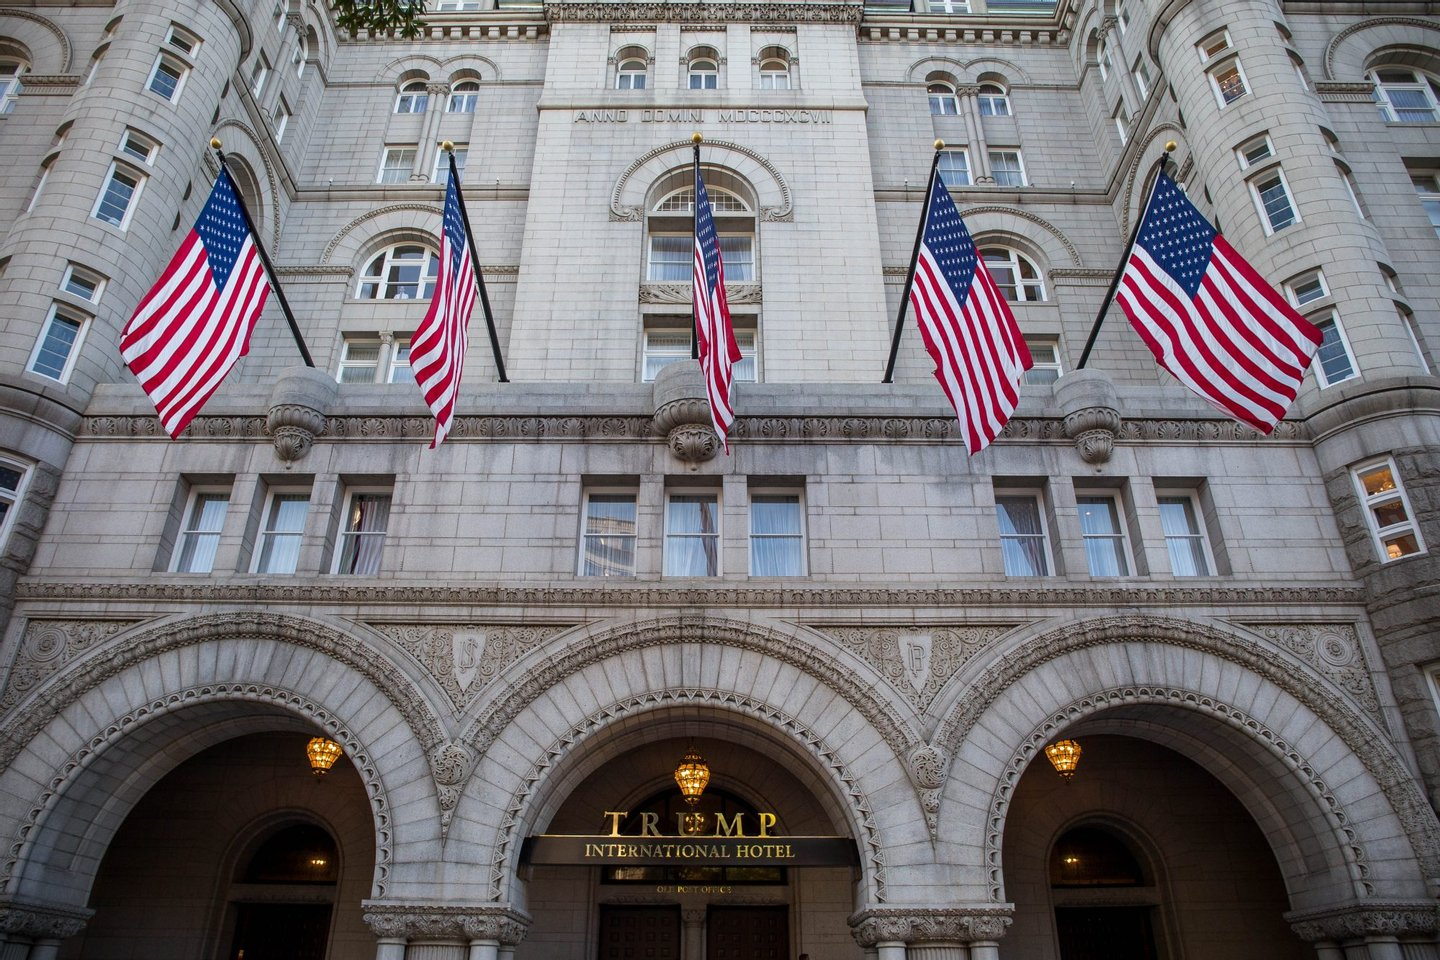 The Trump International Hotel, Washington is pictured before its grand opening October 26, 2016 in Washington, DC. / AFP / ZACH GIBSON (Photo credit should read ZACH GIBSON/AFP/Getty Images)